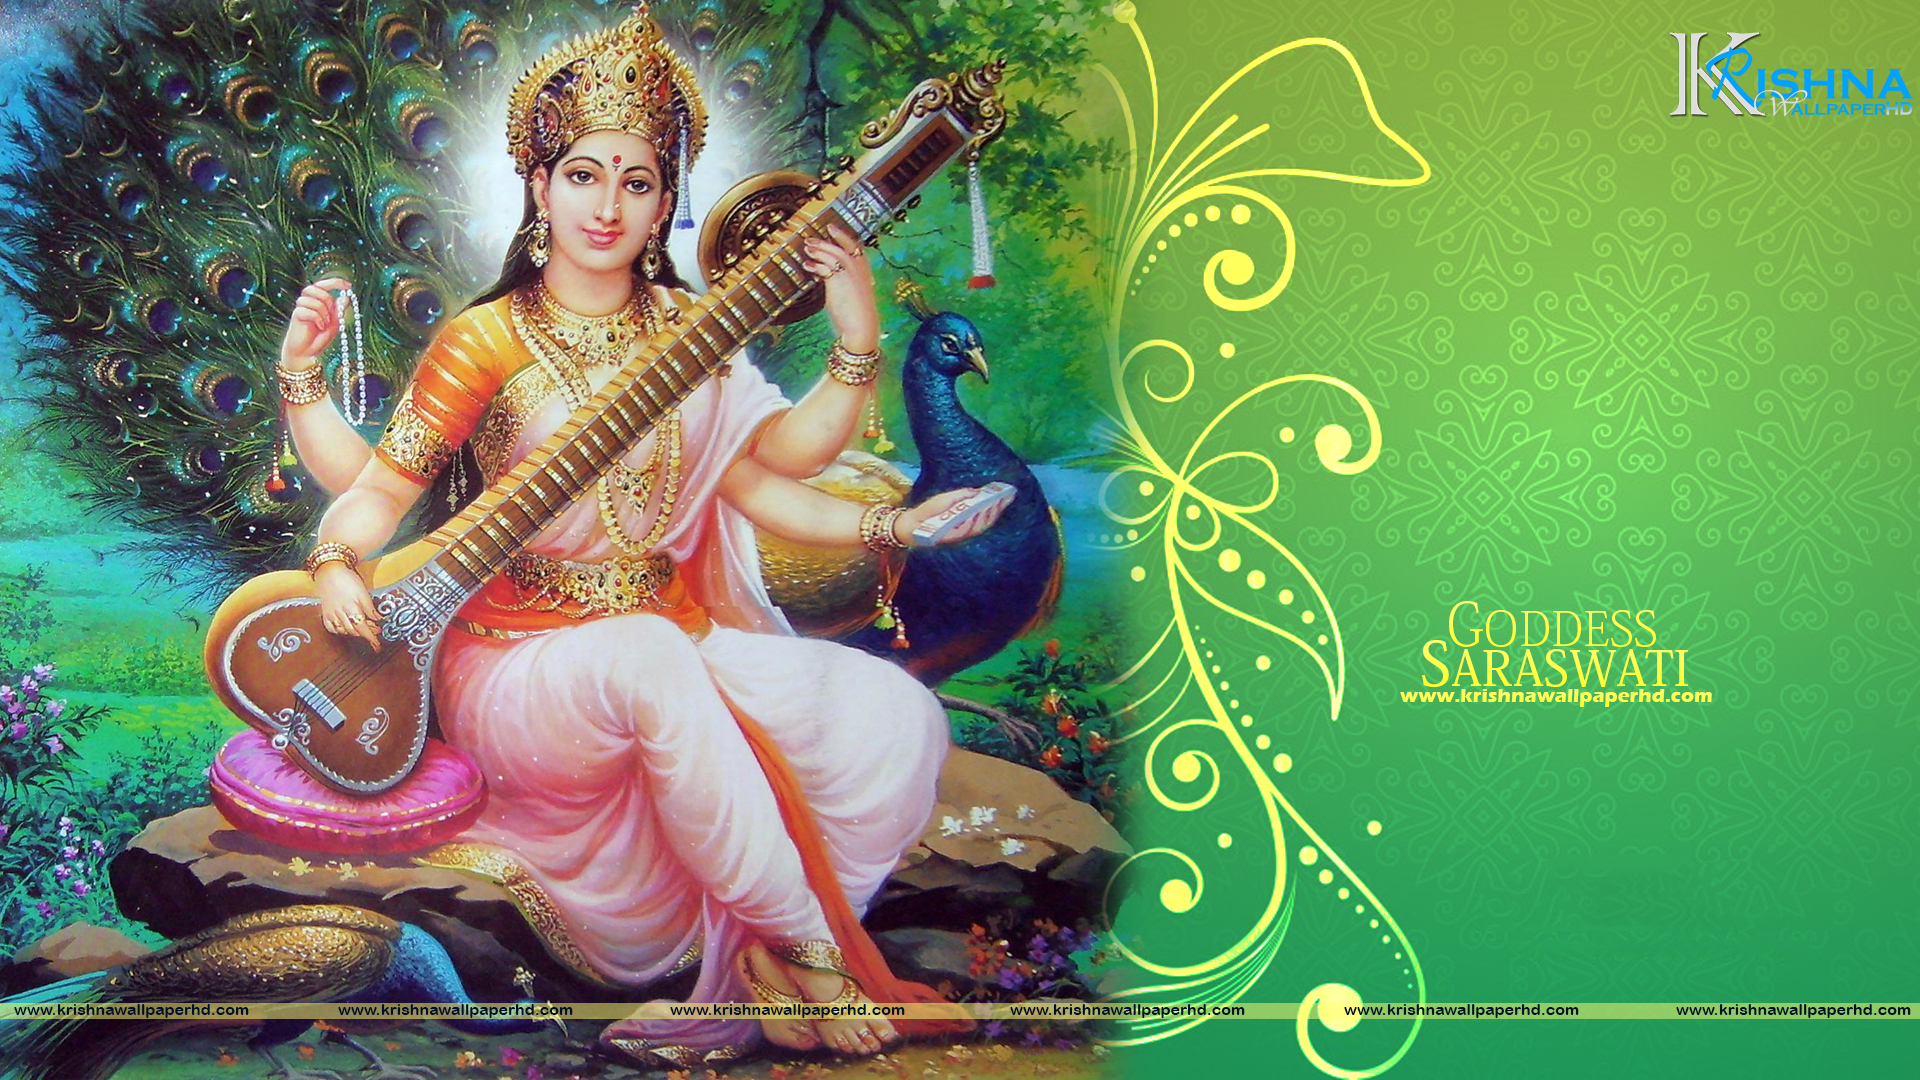 Goddess Saraswati Full HD Size Wallpaper Free Download